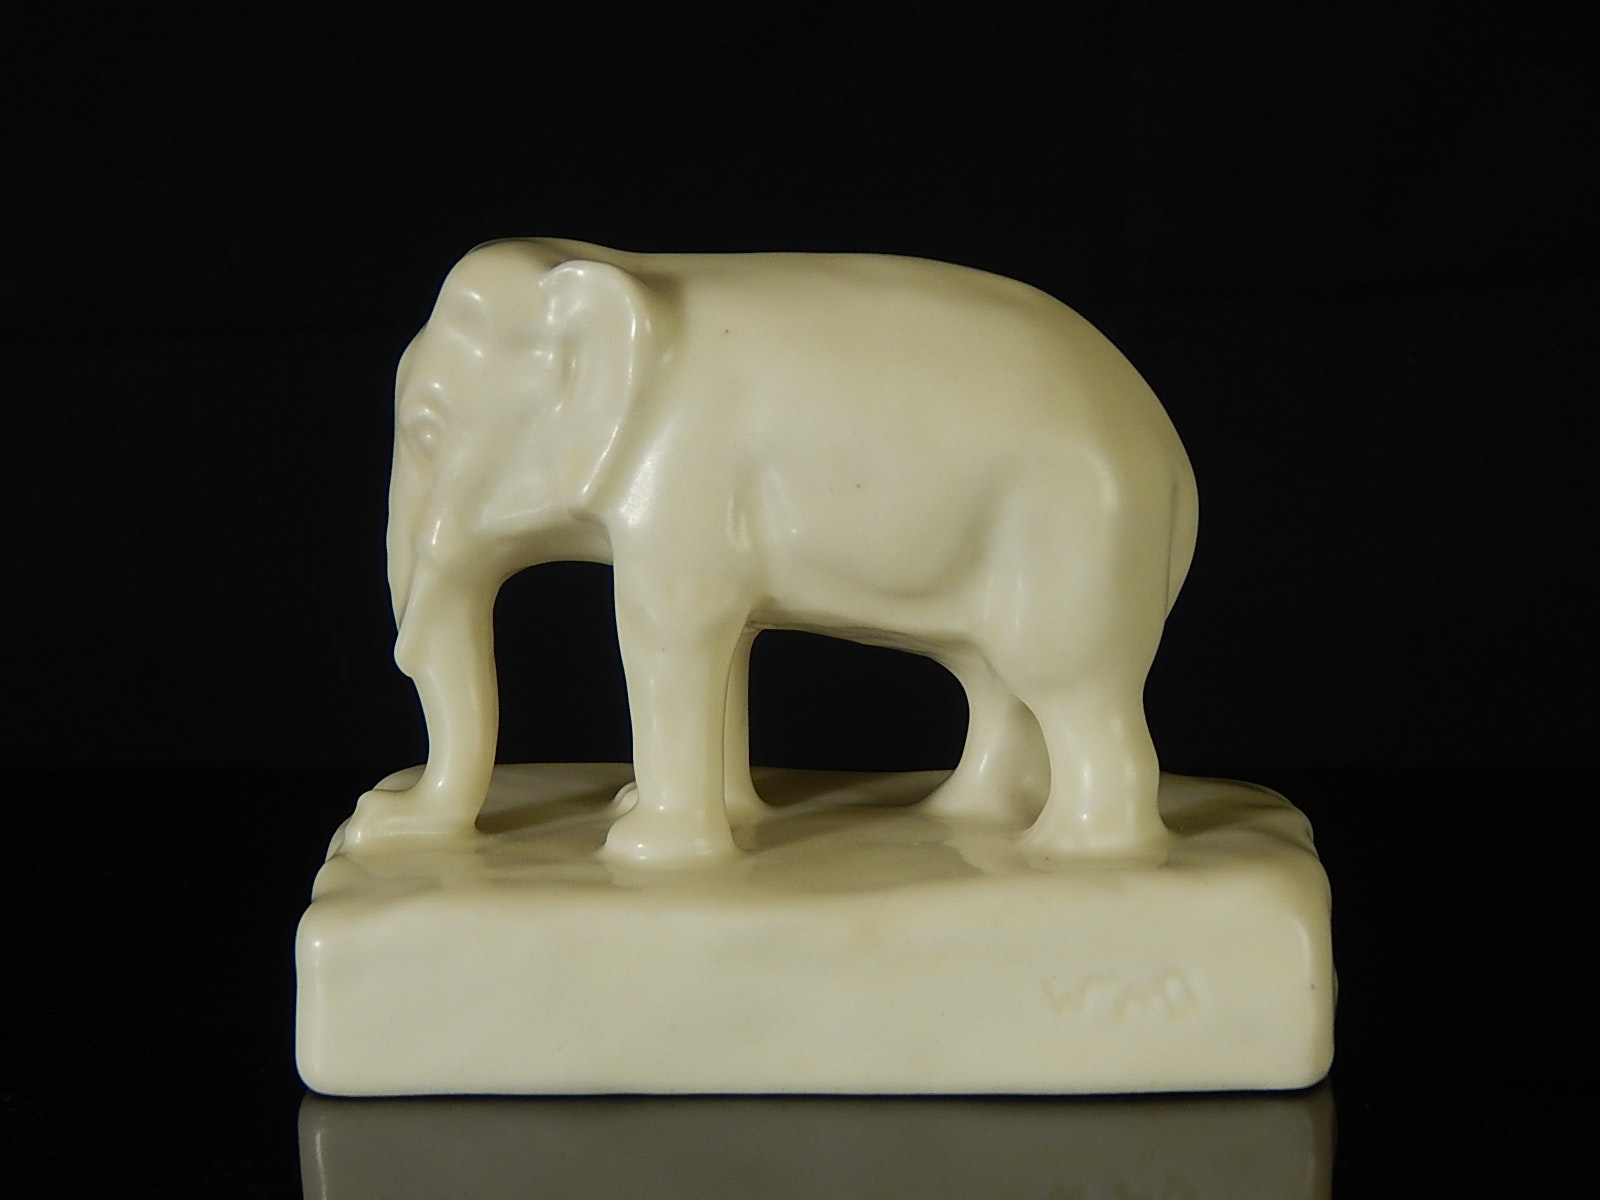 1931 Rookwood Pottery White Elephant Figurine ...